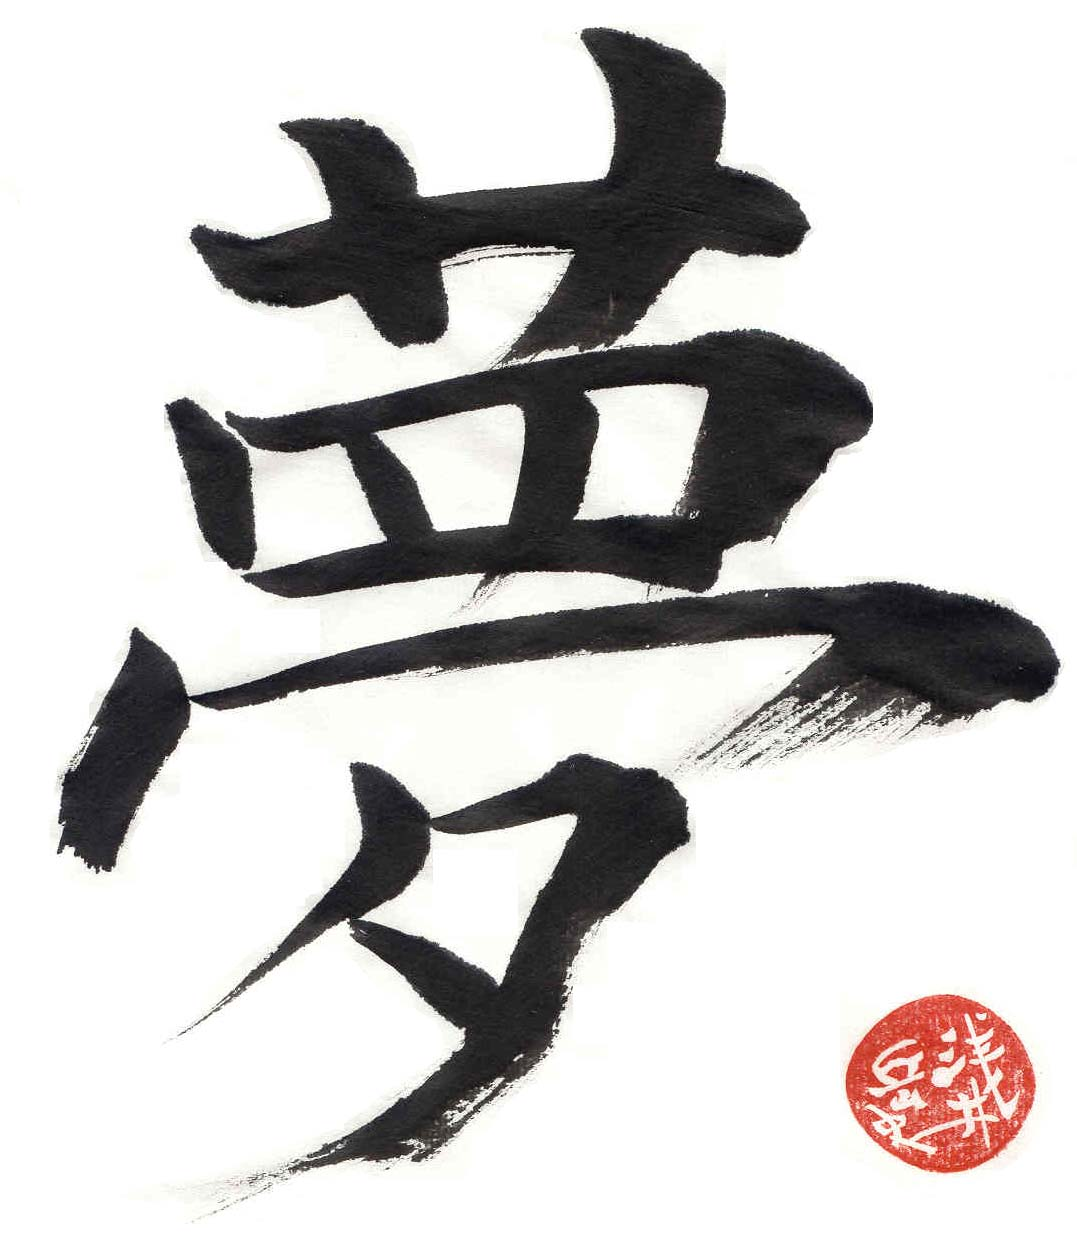 Takeshi's calligraphy, dream.